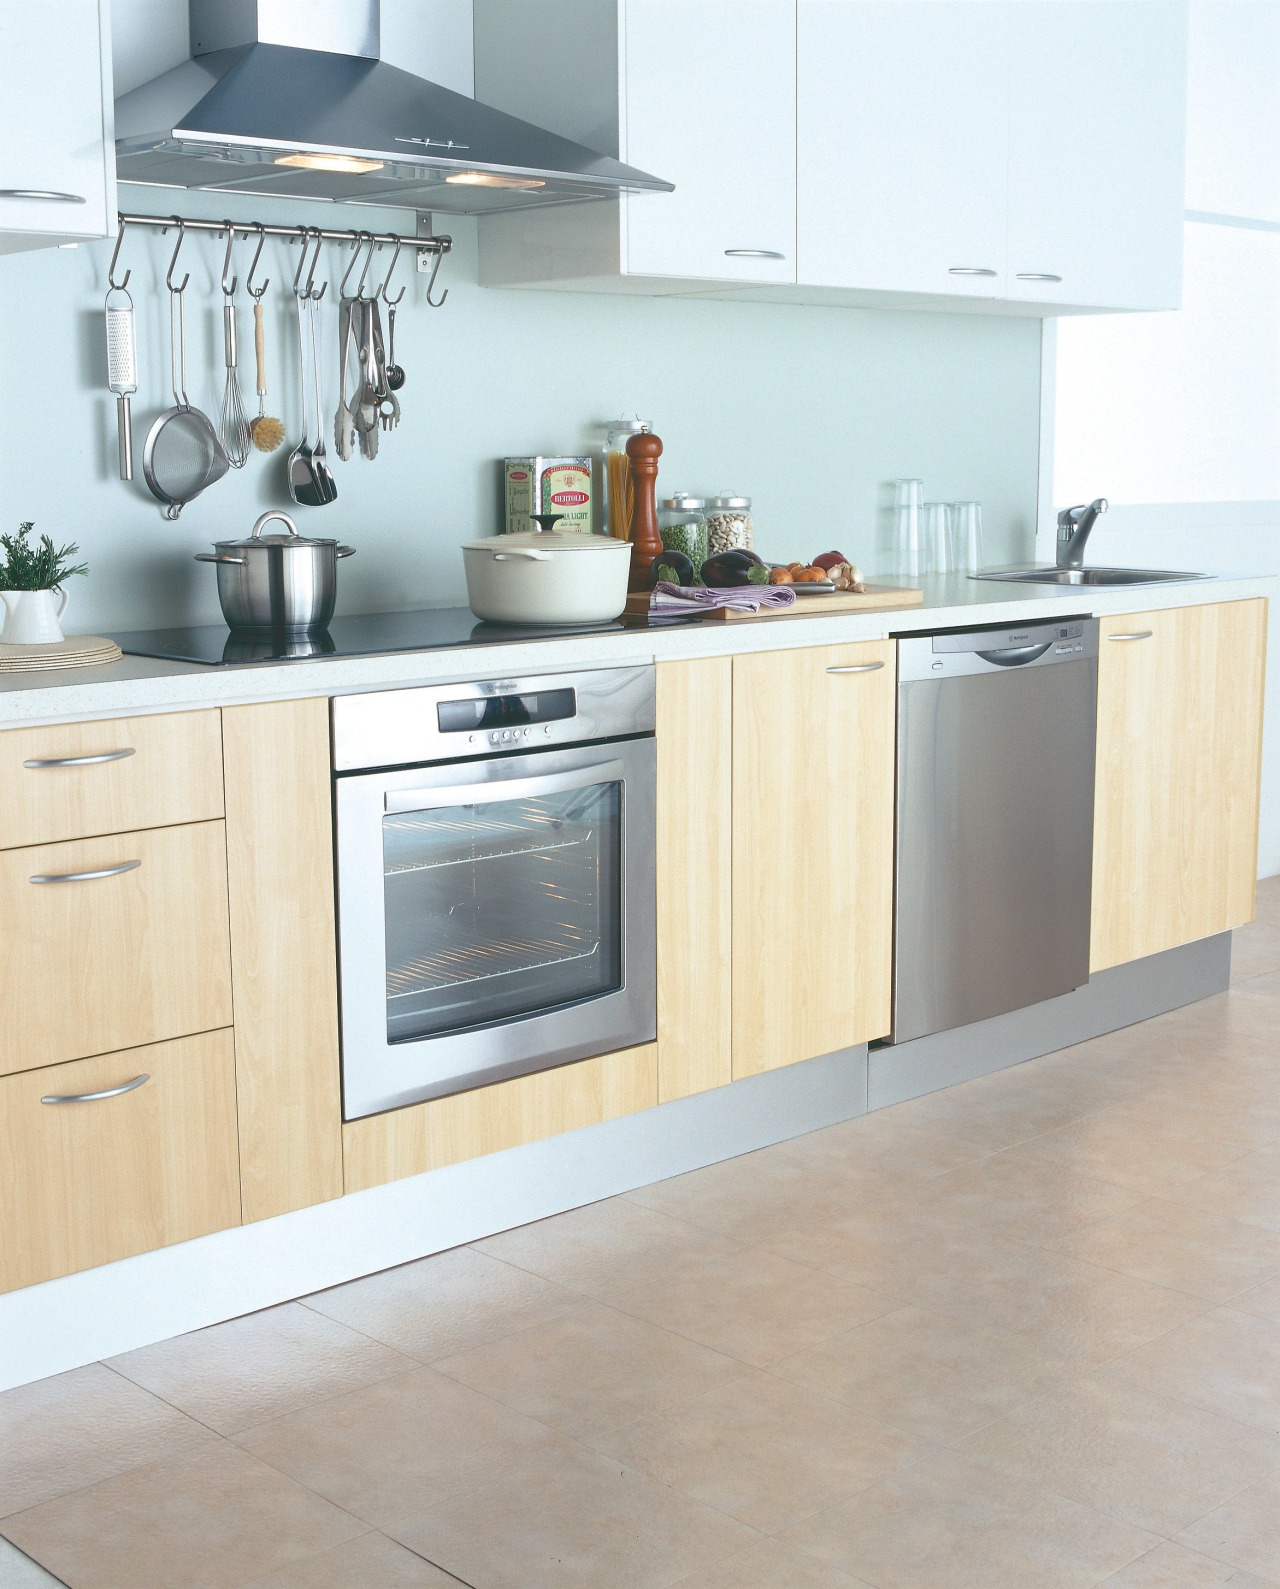 A photograph of a kitchen featuring Westinghouse kitchen cabinetry, countertop, cuisine classique, floor, flooring, furniture, home appliance, interior design, kitchen, kitchen appliance, kitchen stove, major appliance, product design, gray, white